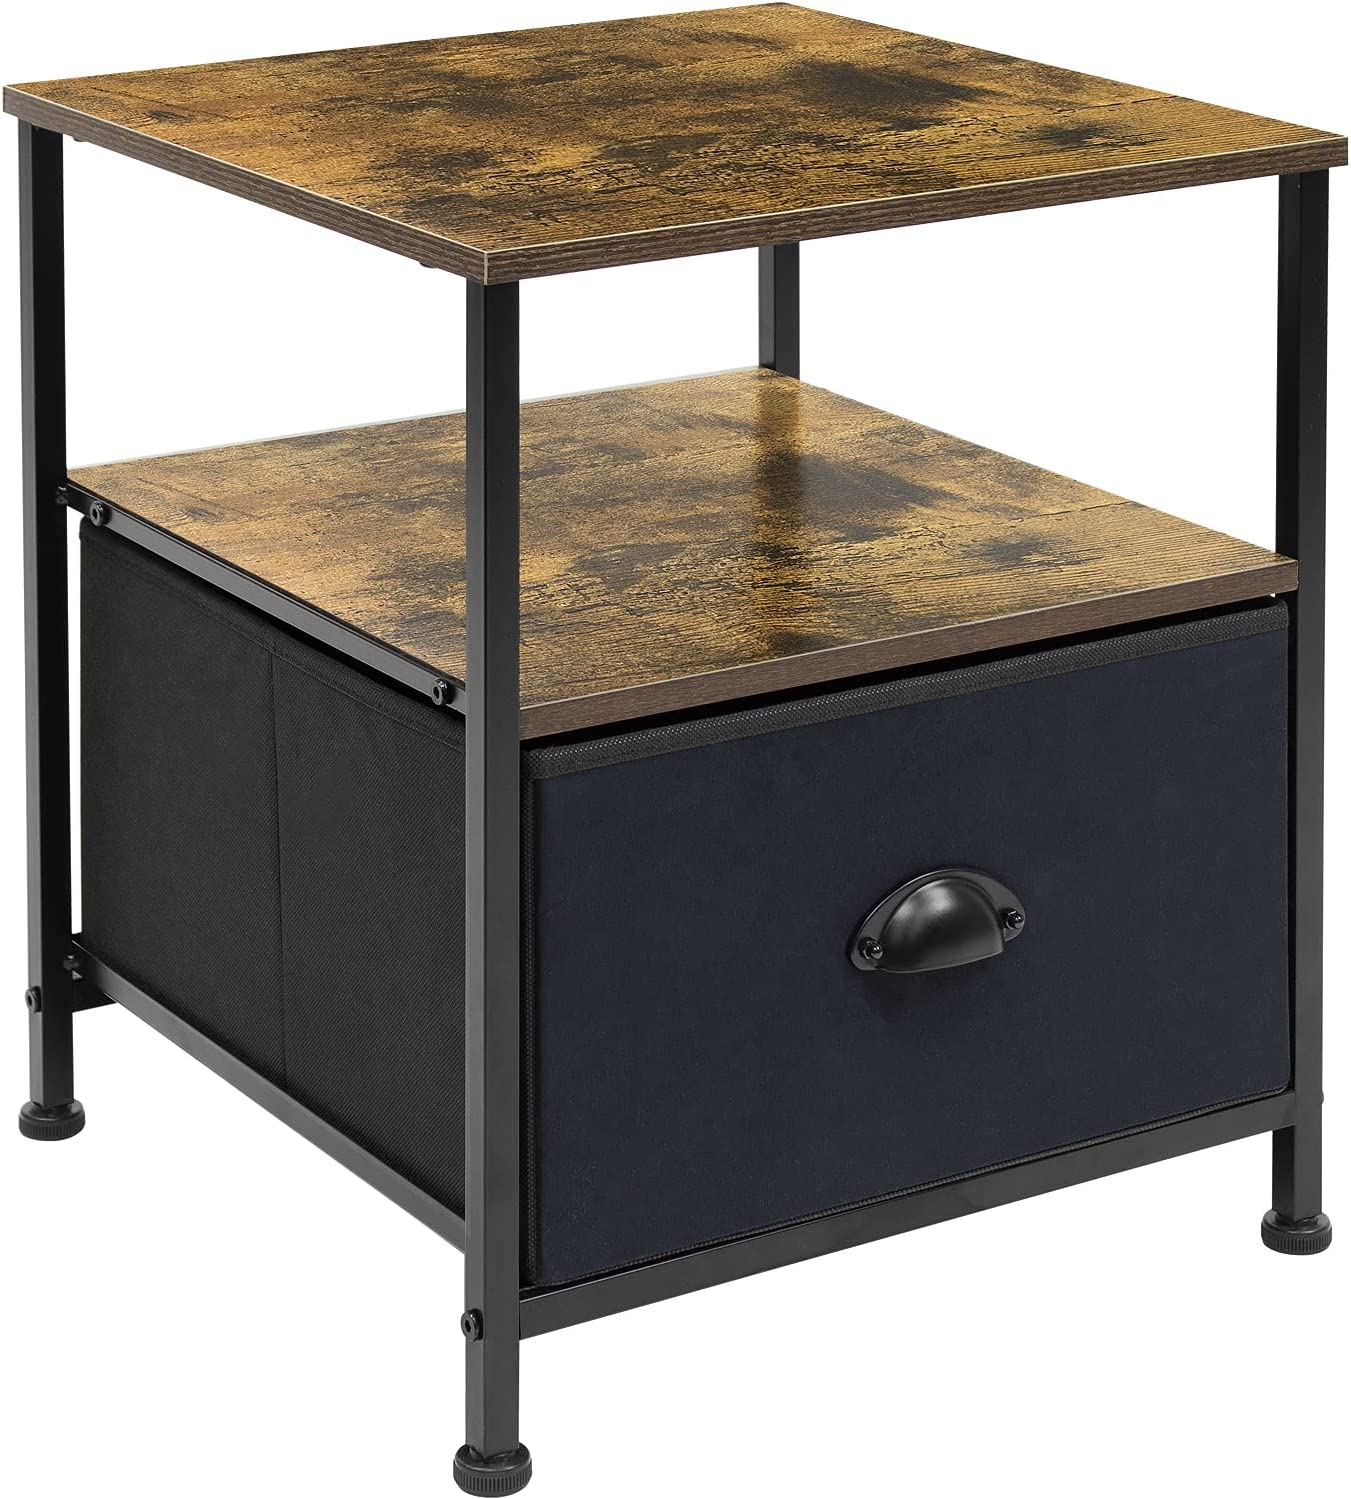 Sorbus Nightstand Bed Side Table, Bedroom Small End Table 1-Drawer Shelf Storage- Furniture Chest Stand for Home, Office, College Dorm, Steel Frame, Fabric Bins, Rustic Wood Top